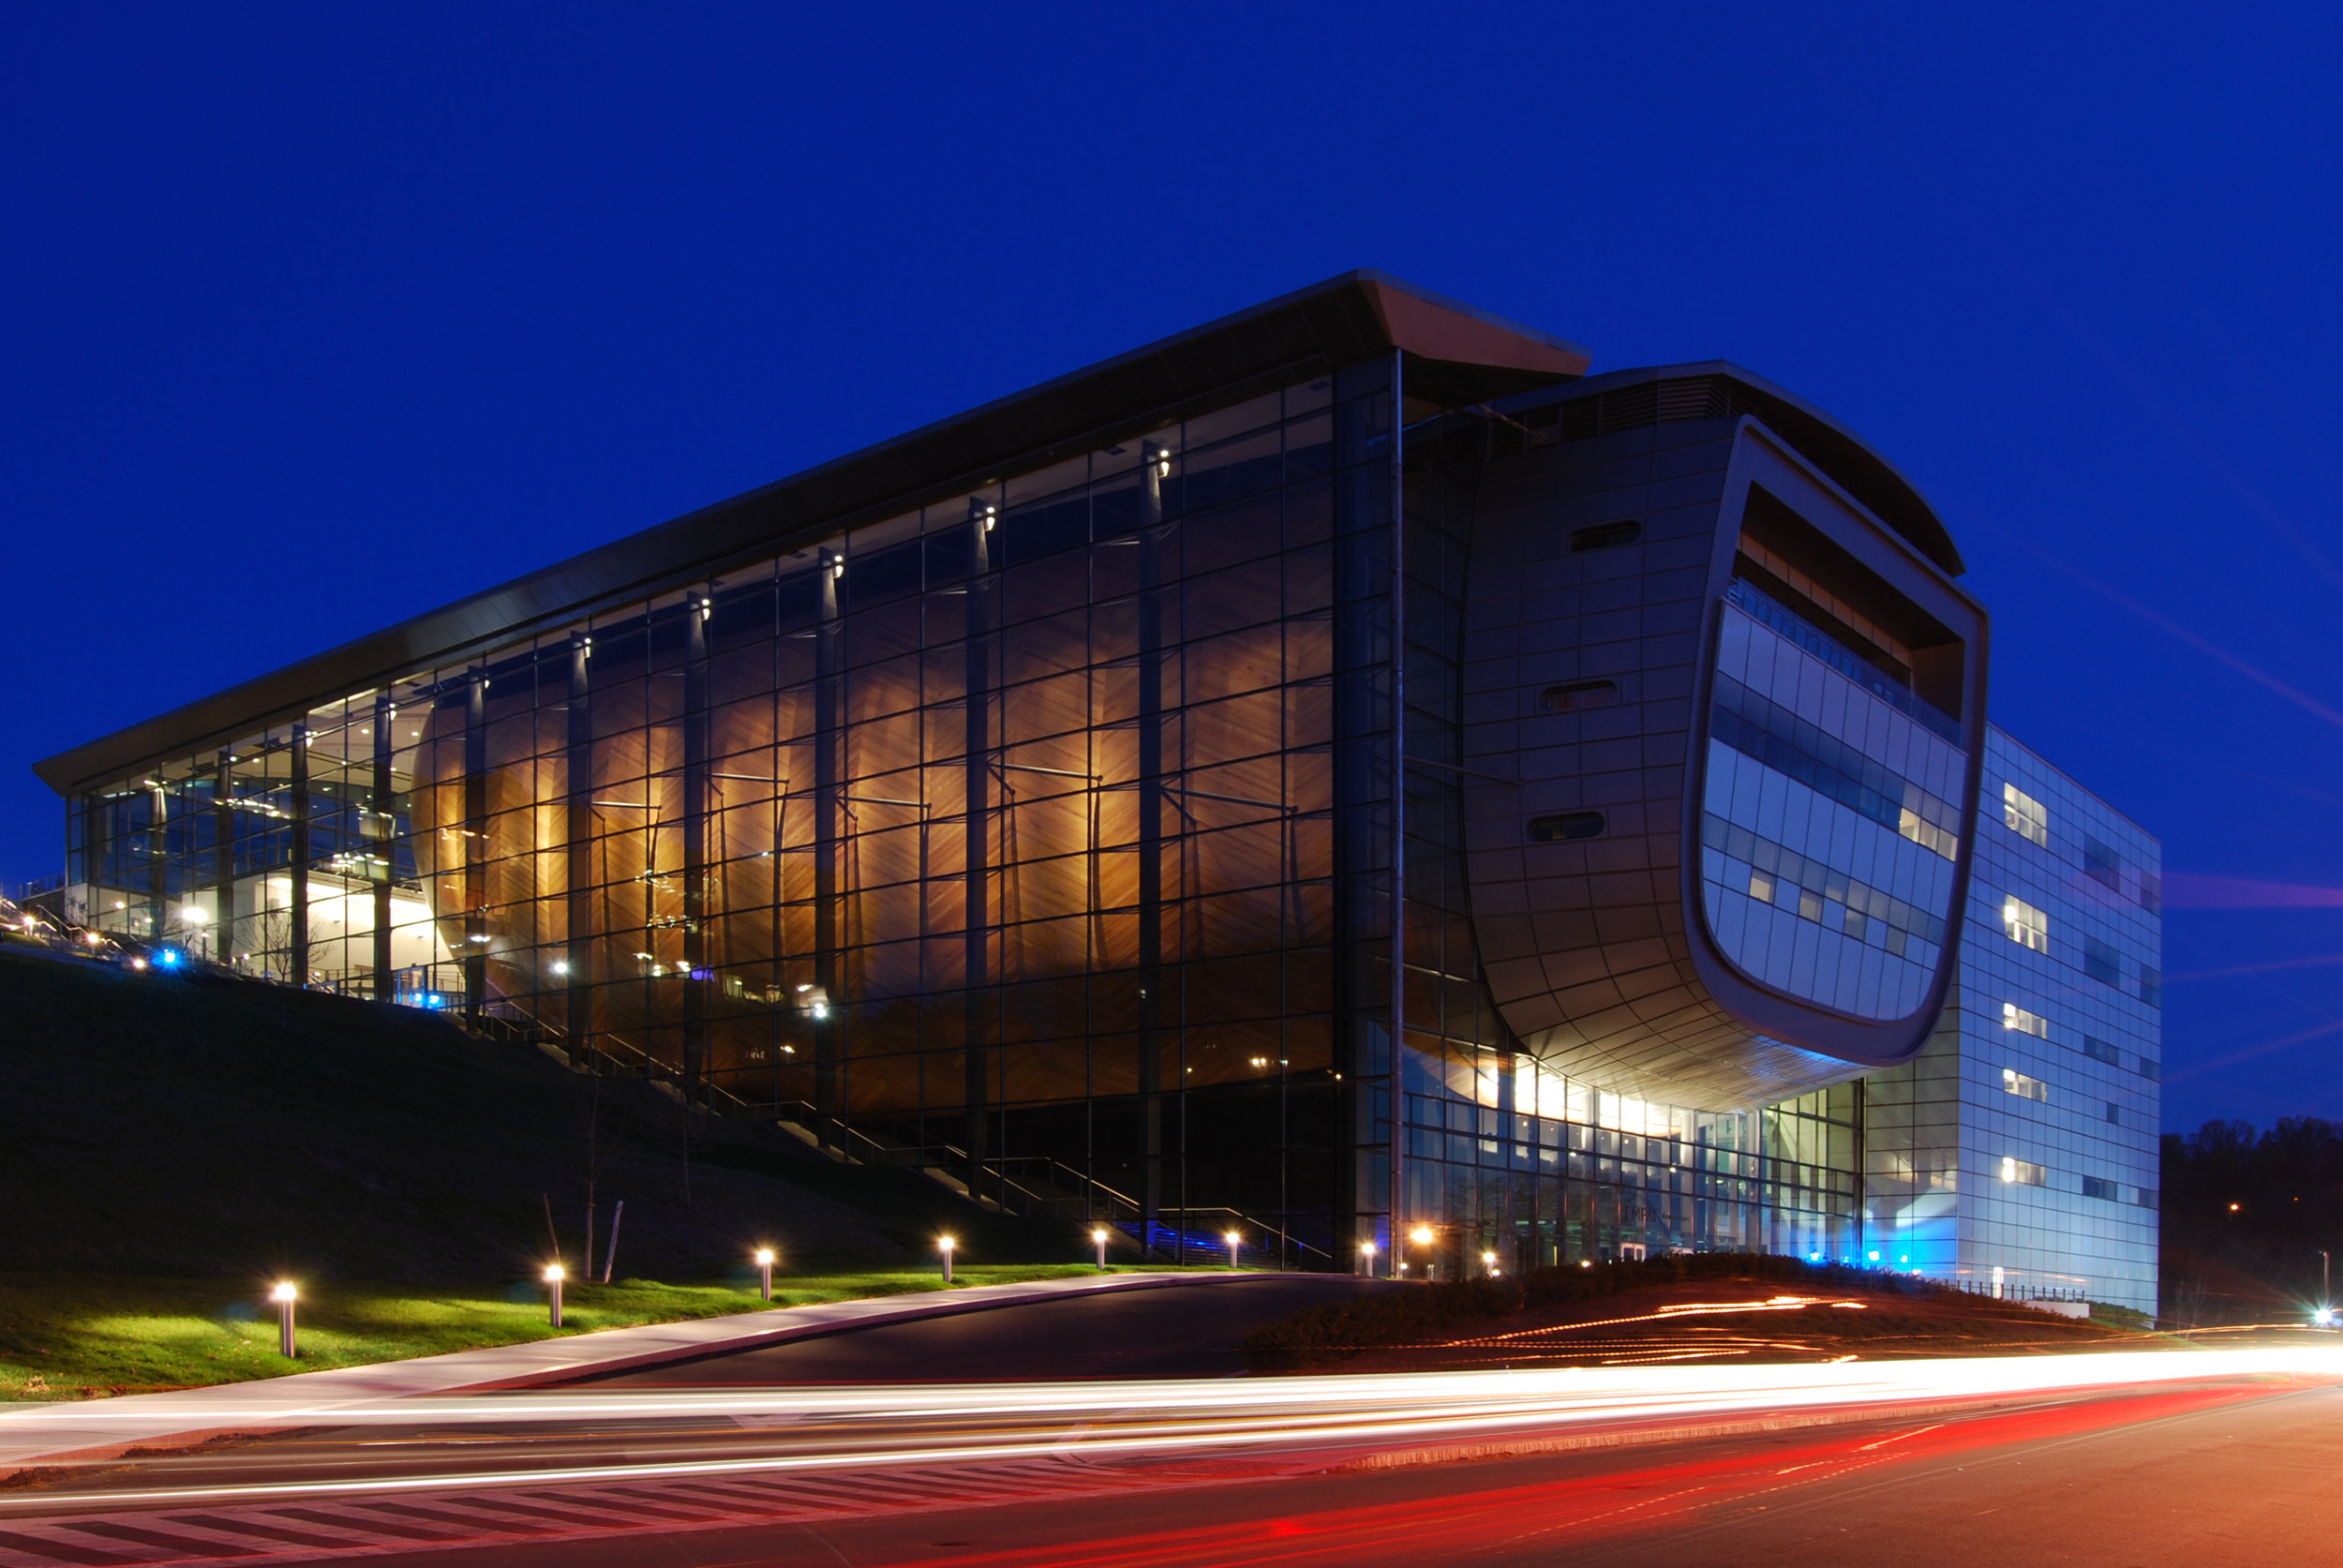 The Experimental Media & Performing Arts Center (EMPAC). where the arts, sciences, and technology interact with and influence each other by using the same facilities, technologies, and by breathing the same air. EMPAC is the heart of the American Music Festival.